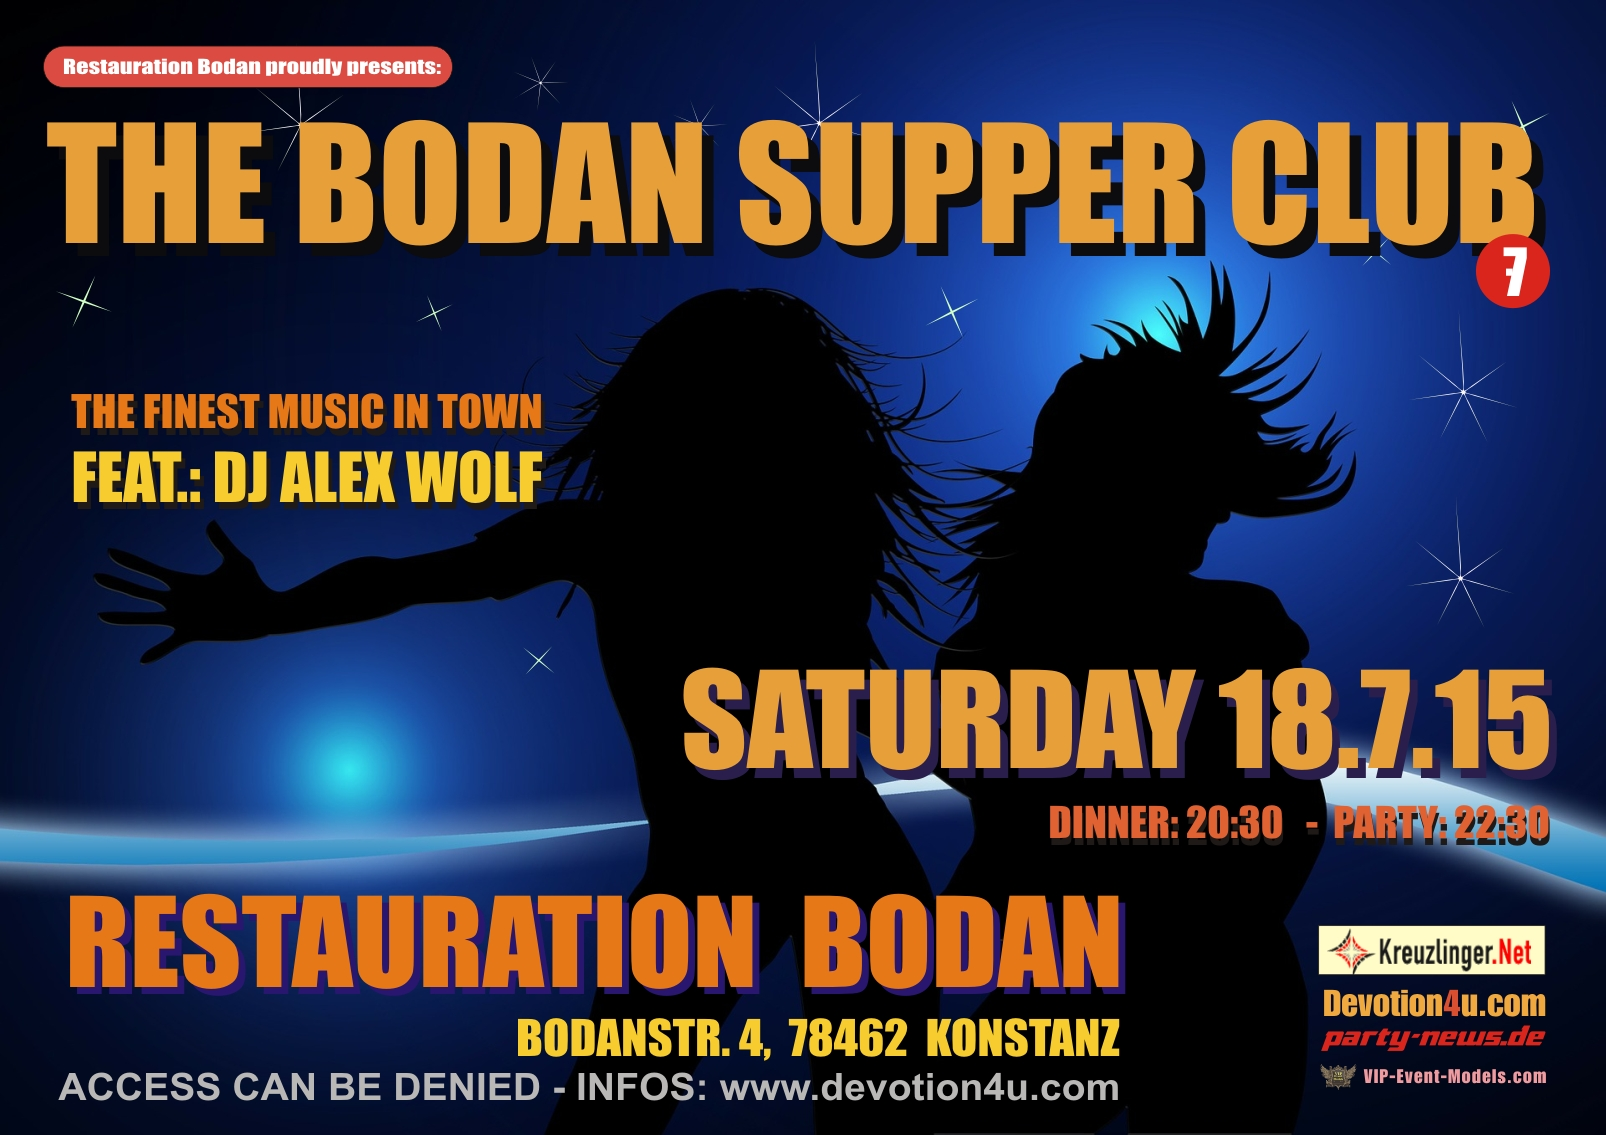 Bodan Supper Club – Sa.18.7.15 – Bodan – Konstanz